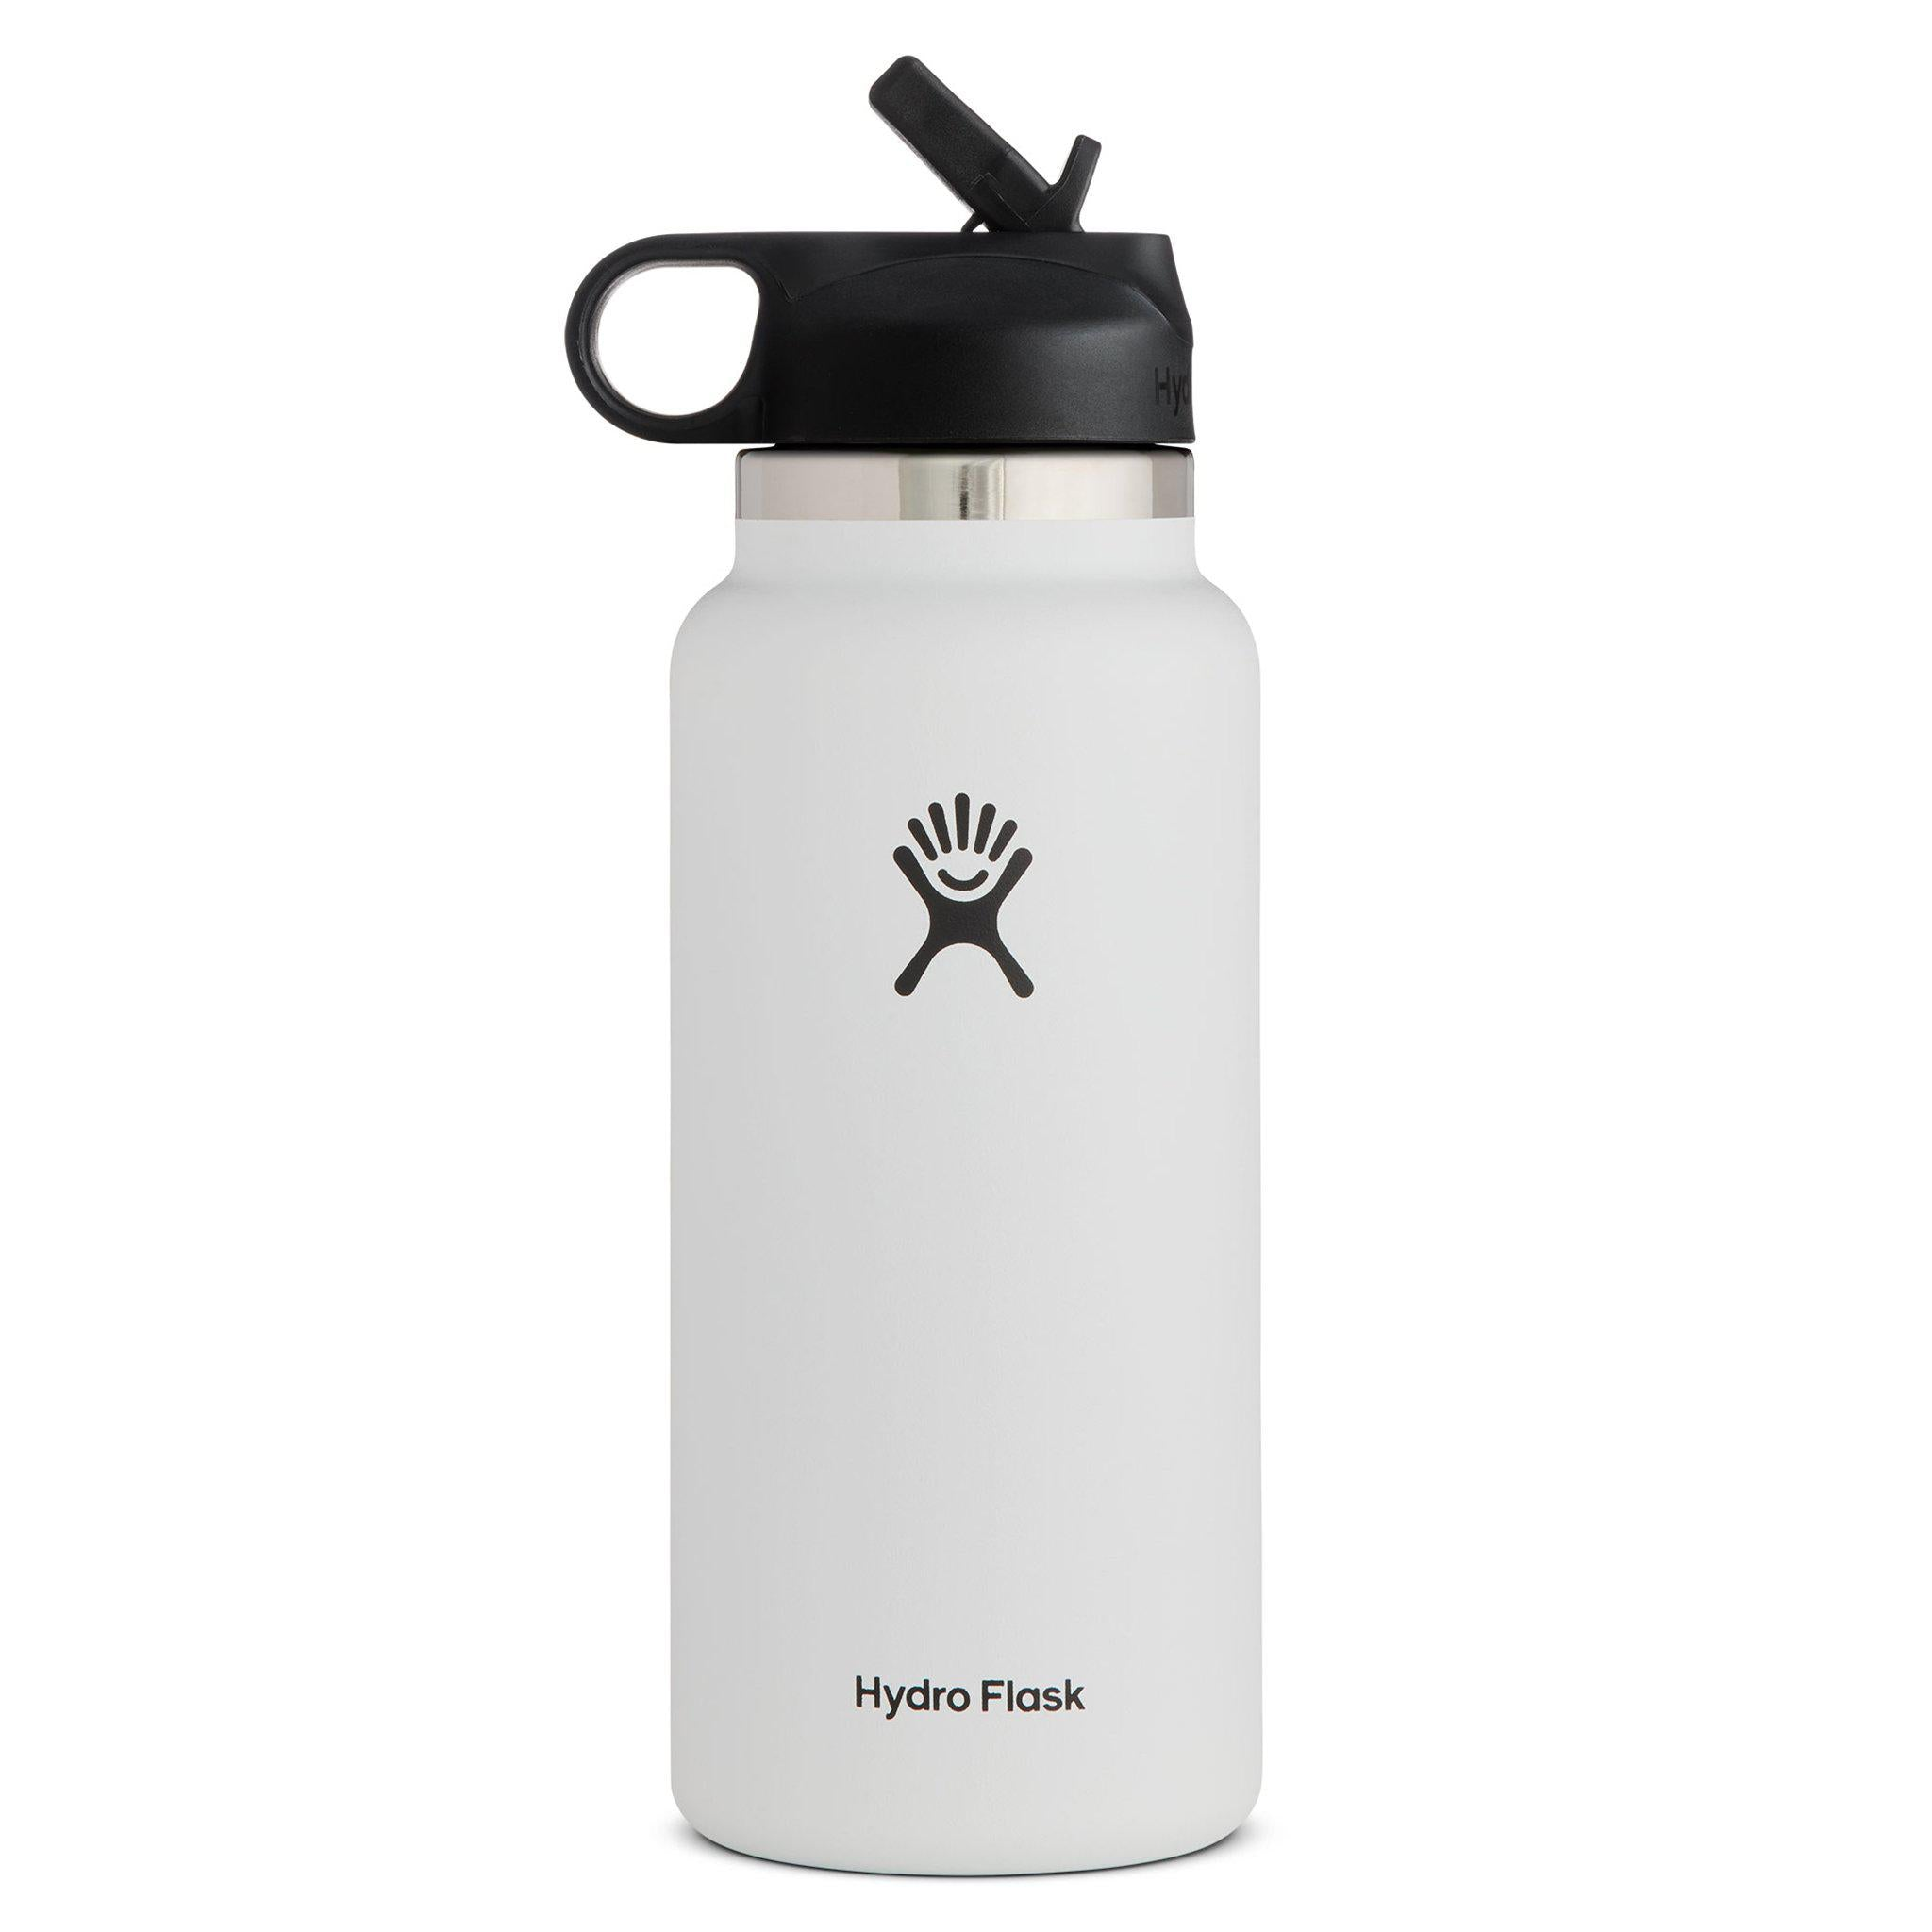 Hydro Flask 32oz Wide Mouth Water Bottle w/ Straw Lid